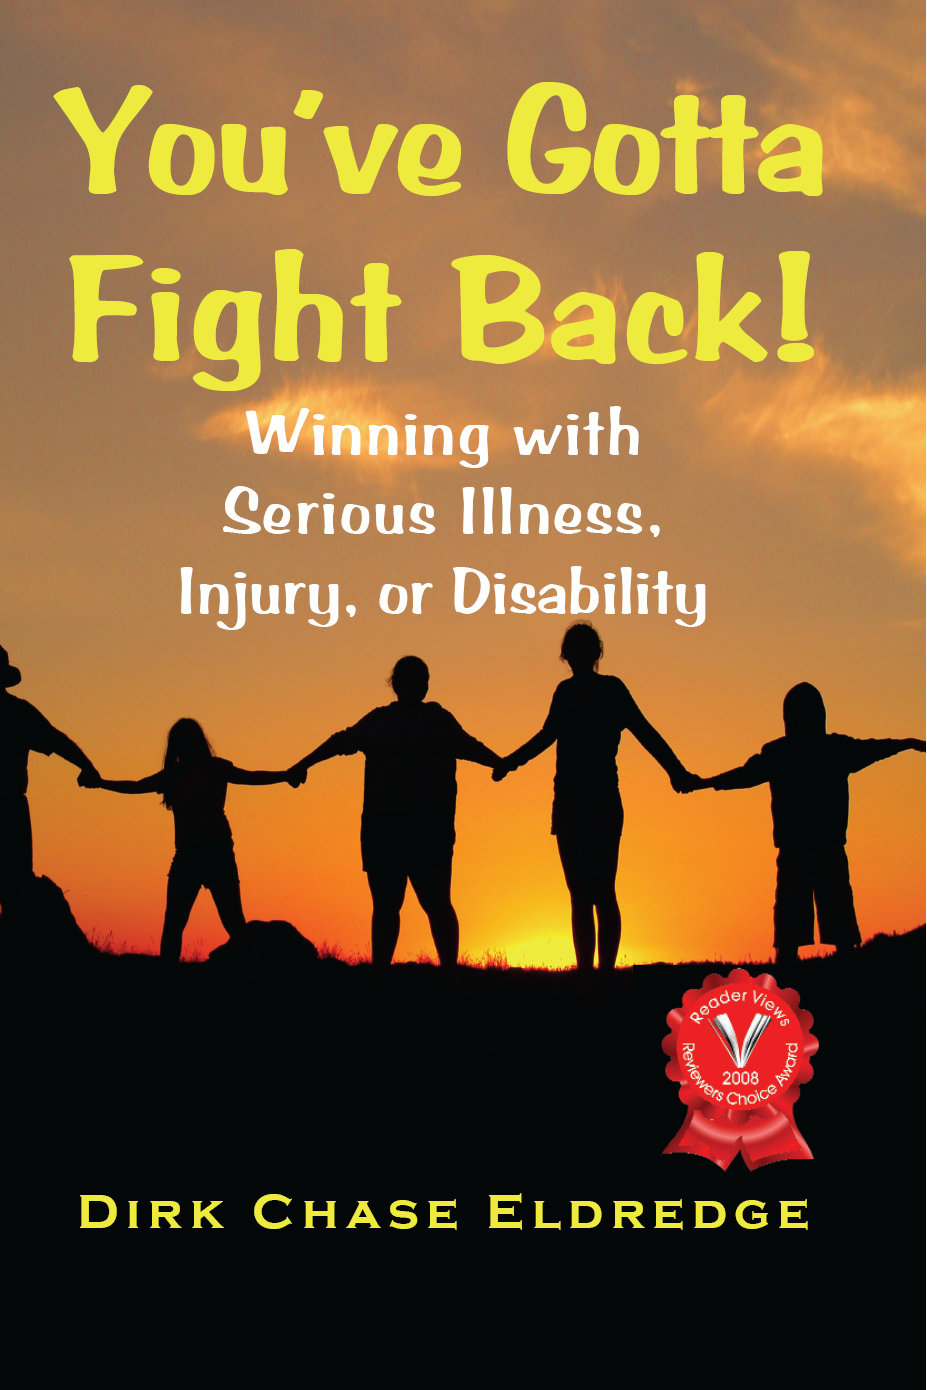 You've Gotta Fight Back!: Winning with serious illness, injury, or disability 978-1-932690-34-7